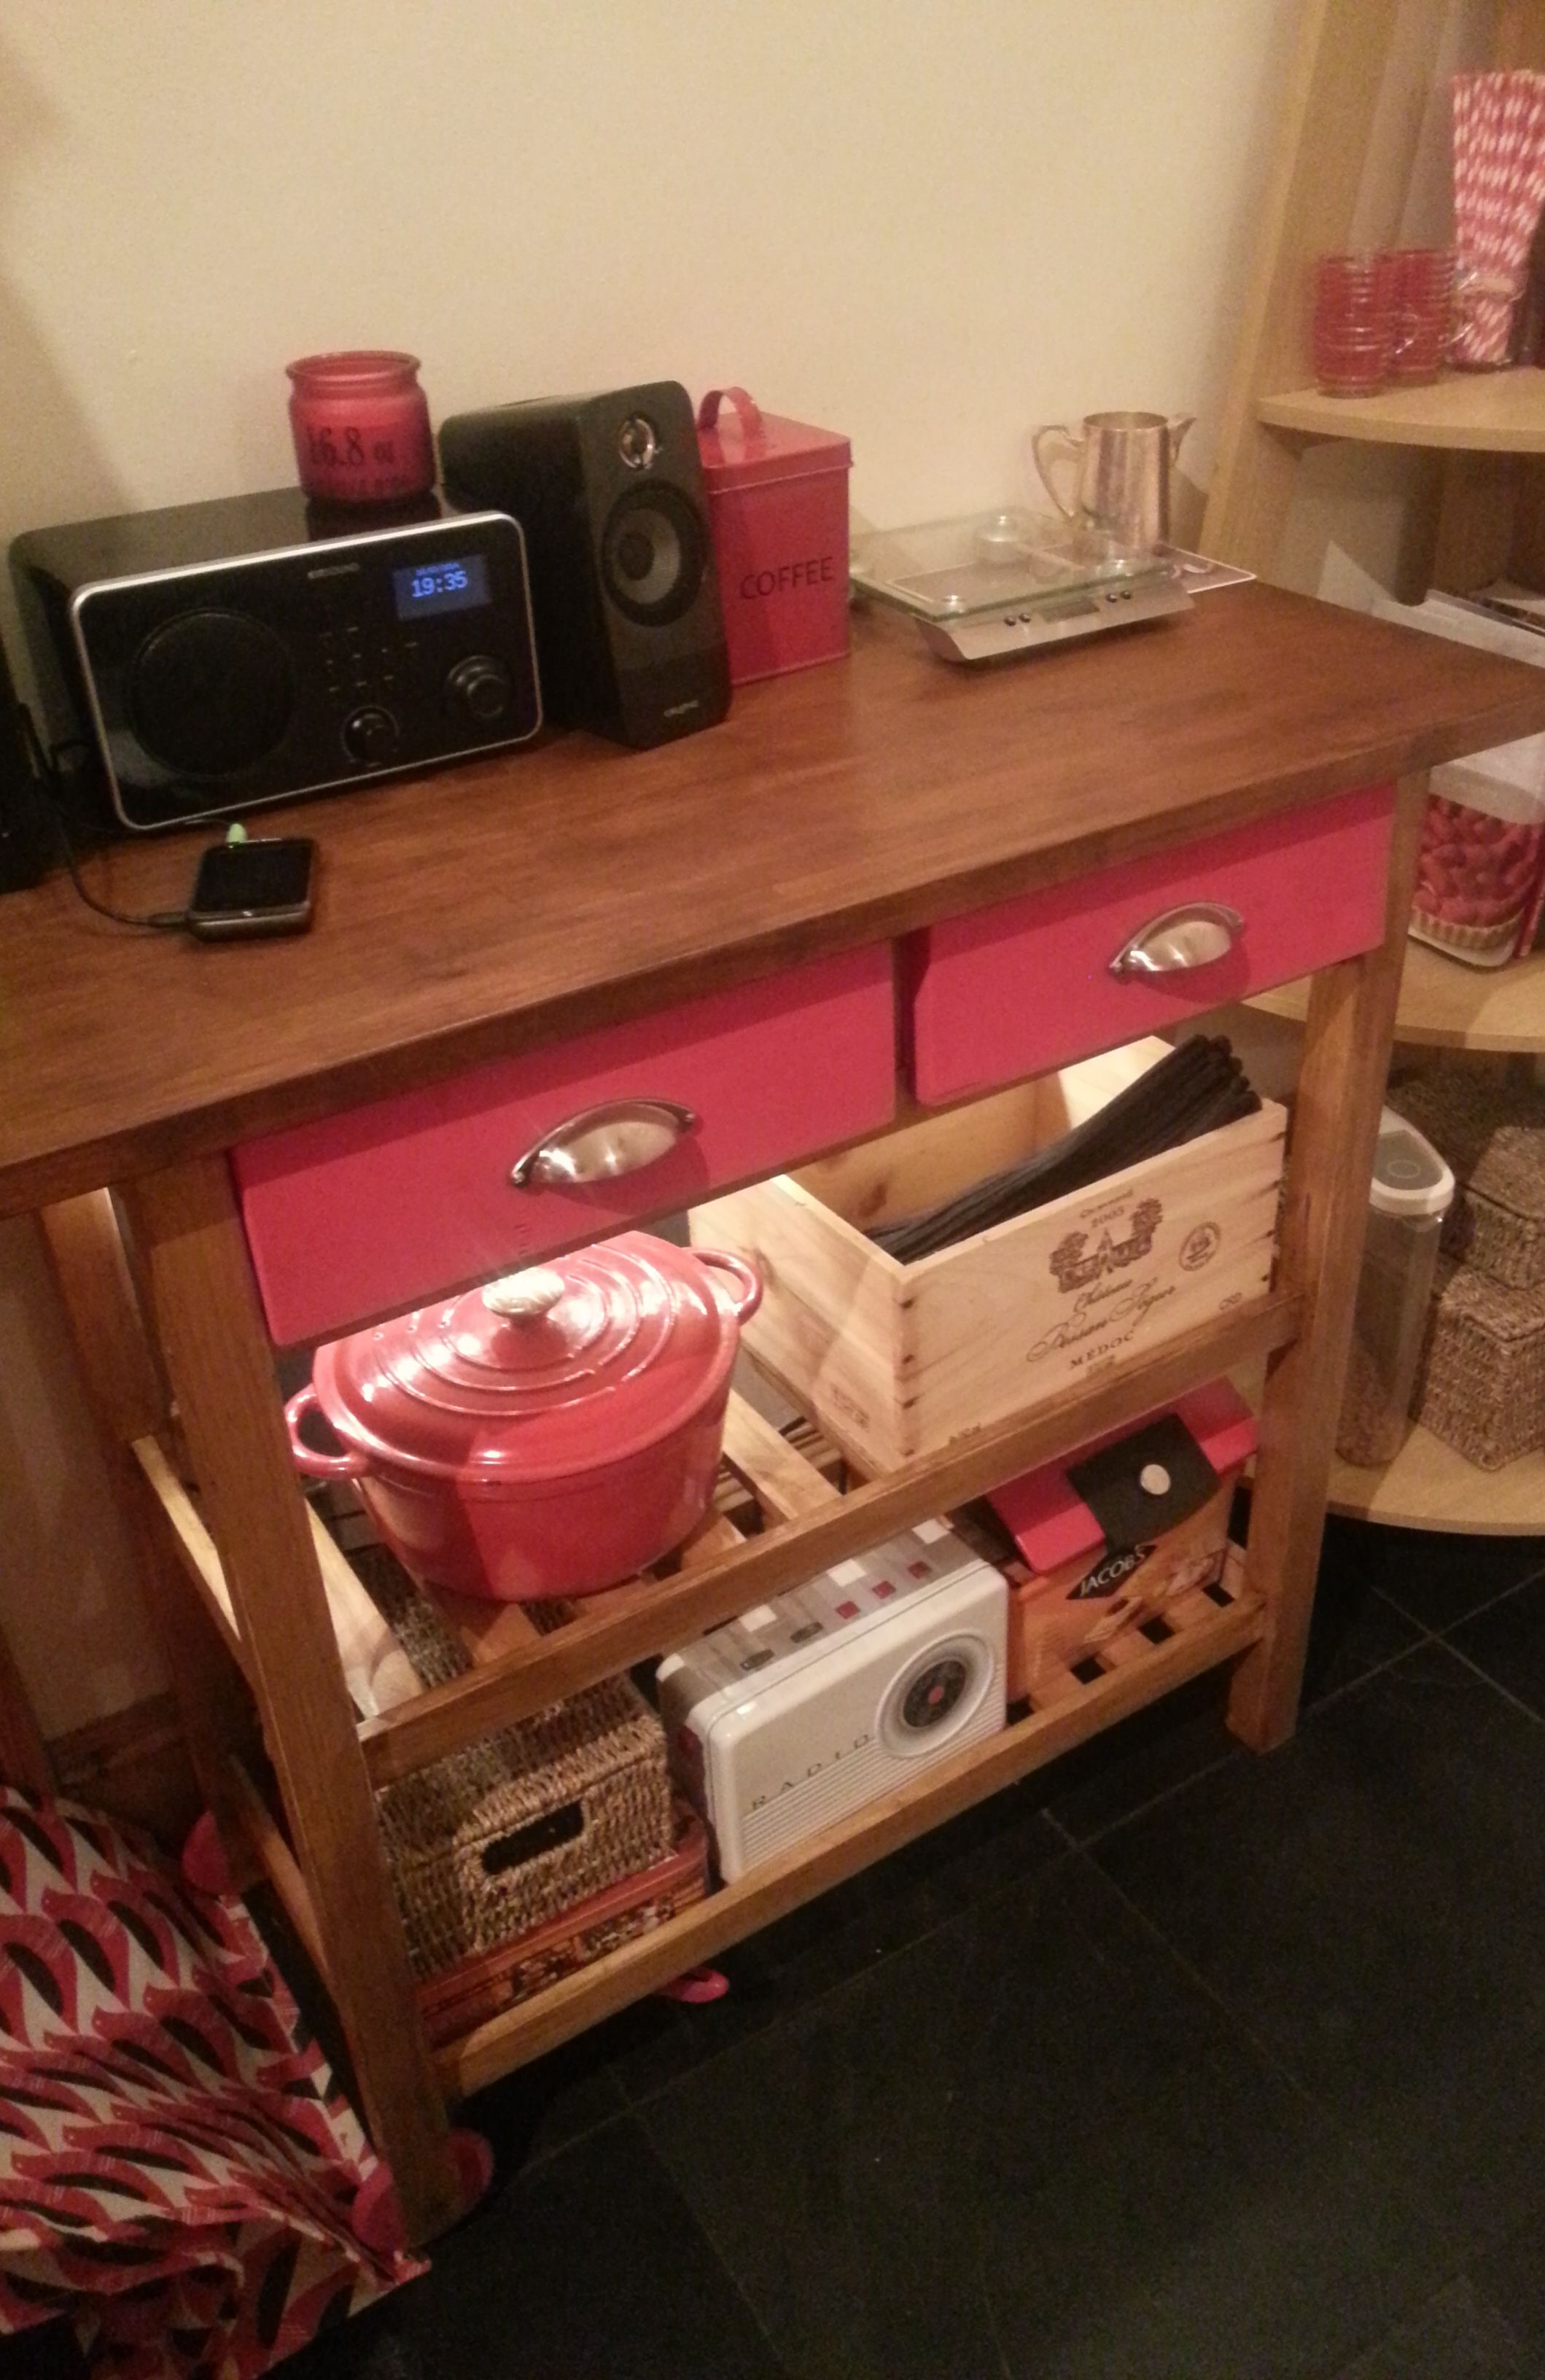 Upcycled Ikea butcher's block - inspired by: http://www.ikeahackers.net/2012/08/forhoja-kitchen-cart-with-wine-crate-fronts.html